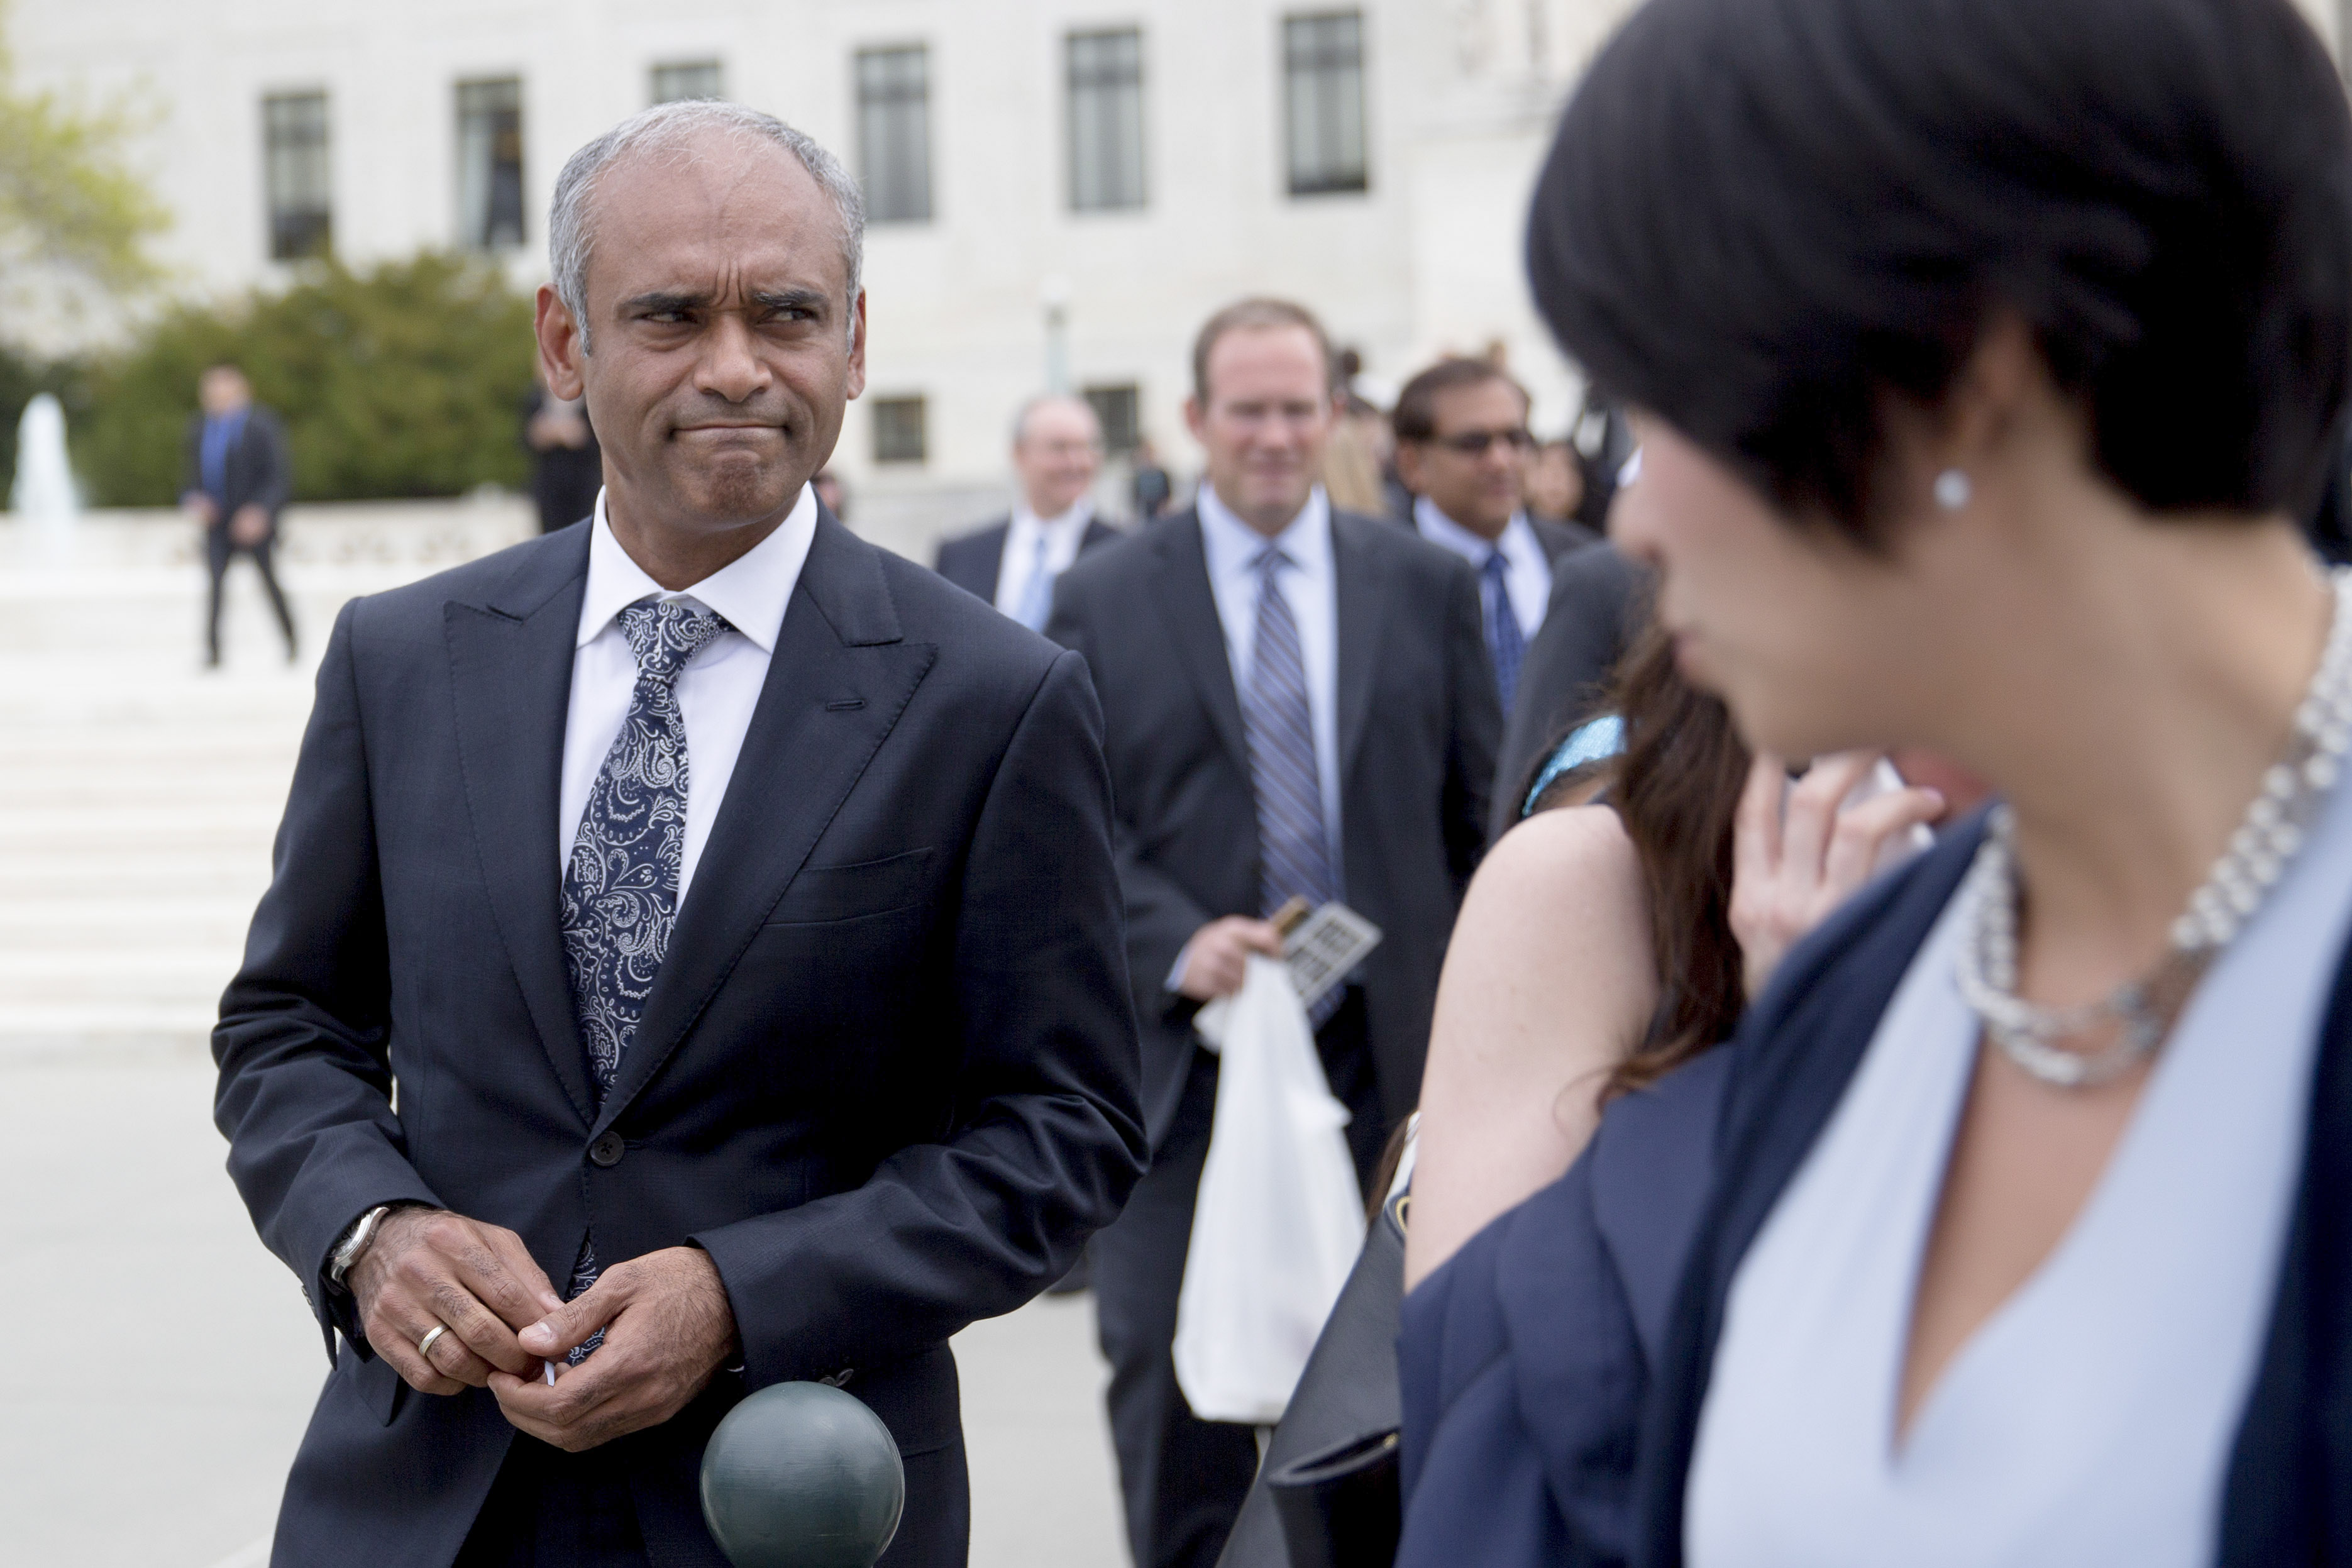 Chet Kanojia, chief executive officer of Aereo Inc., left, leaves the U.S. Supreme Court following oral arguments by Aereo Inc. and American Broadcasting Companies Inc. in Washington, D.C., U.S., on Tuesday, April 22, 2014.